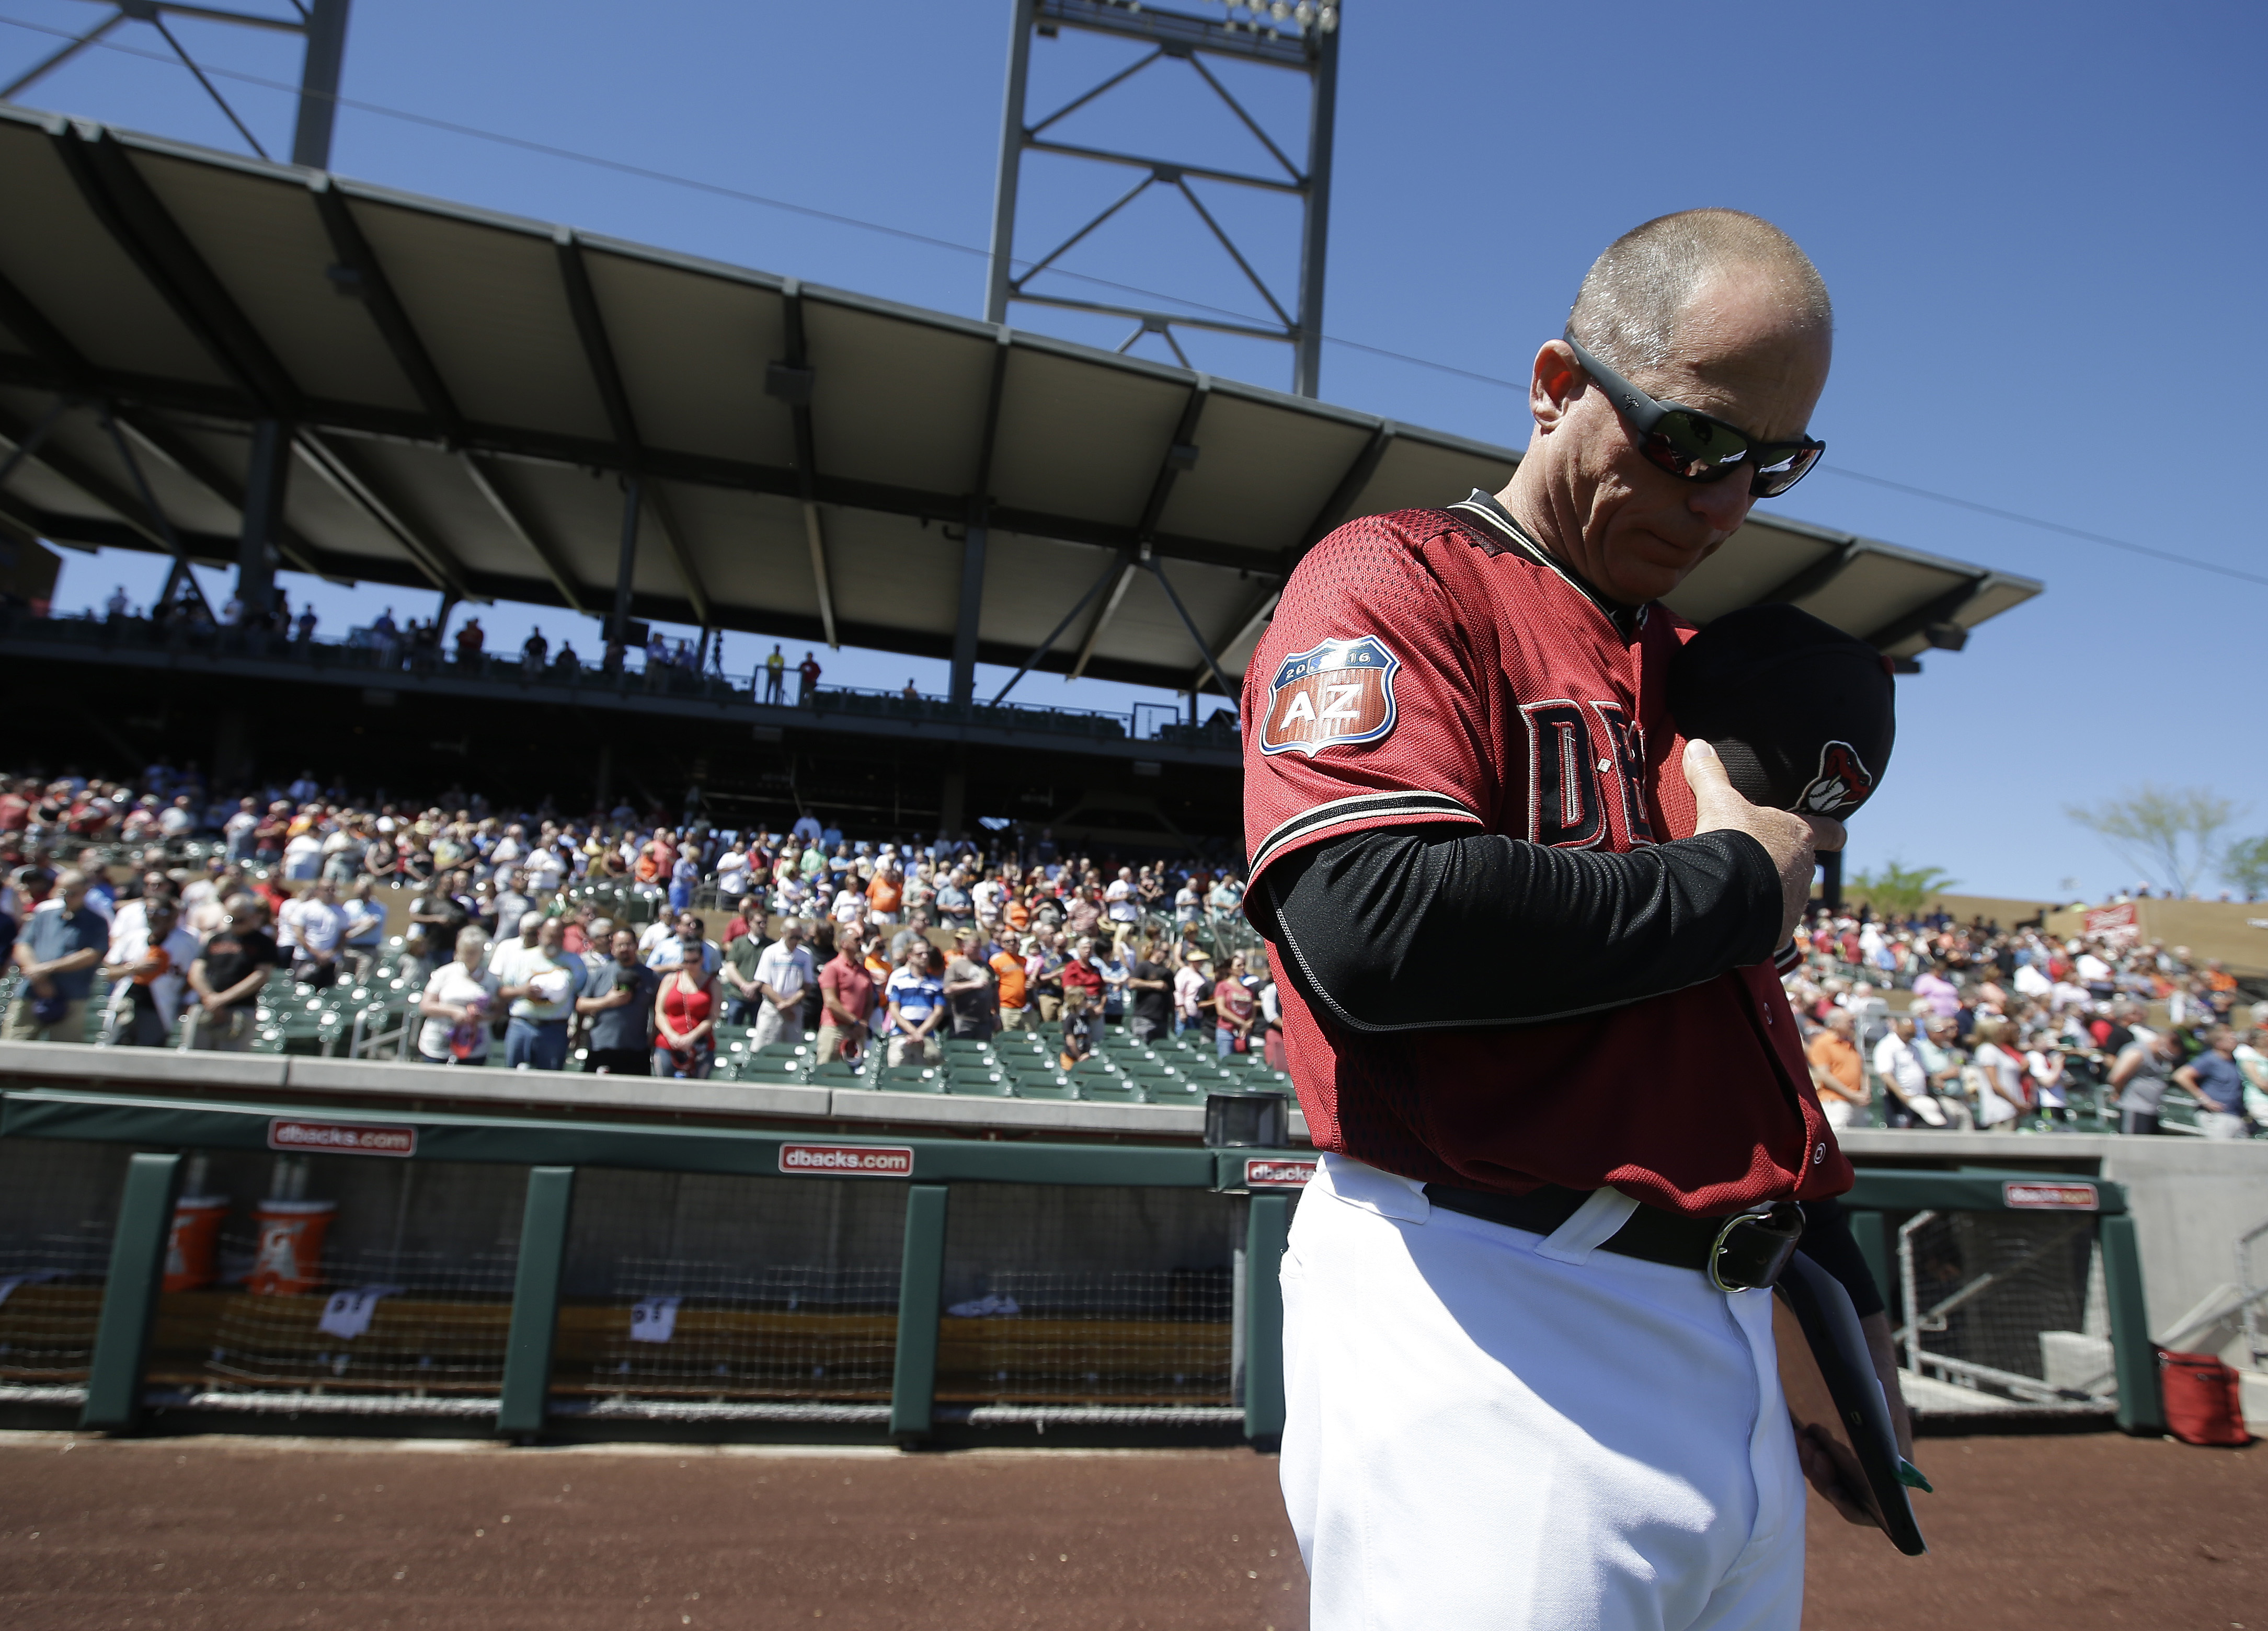 Arizona Diamondbacks manager Chip Hale bow his head during a moment of silence for Joe Garagiola before the team's spring training baseball game against the San Francisco Giants, Wednesday, March 23, 2016, in Scottsdale, Ariz. (AP Photo/Darron Cummings)